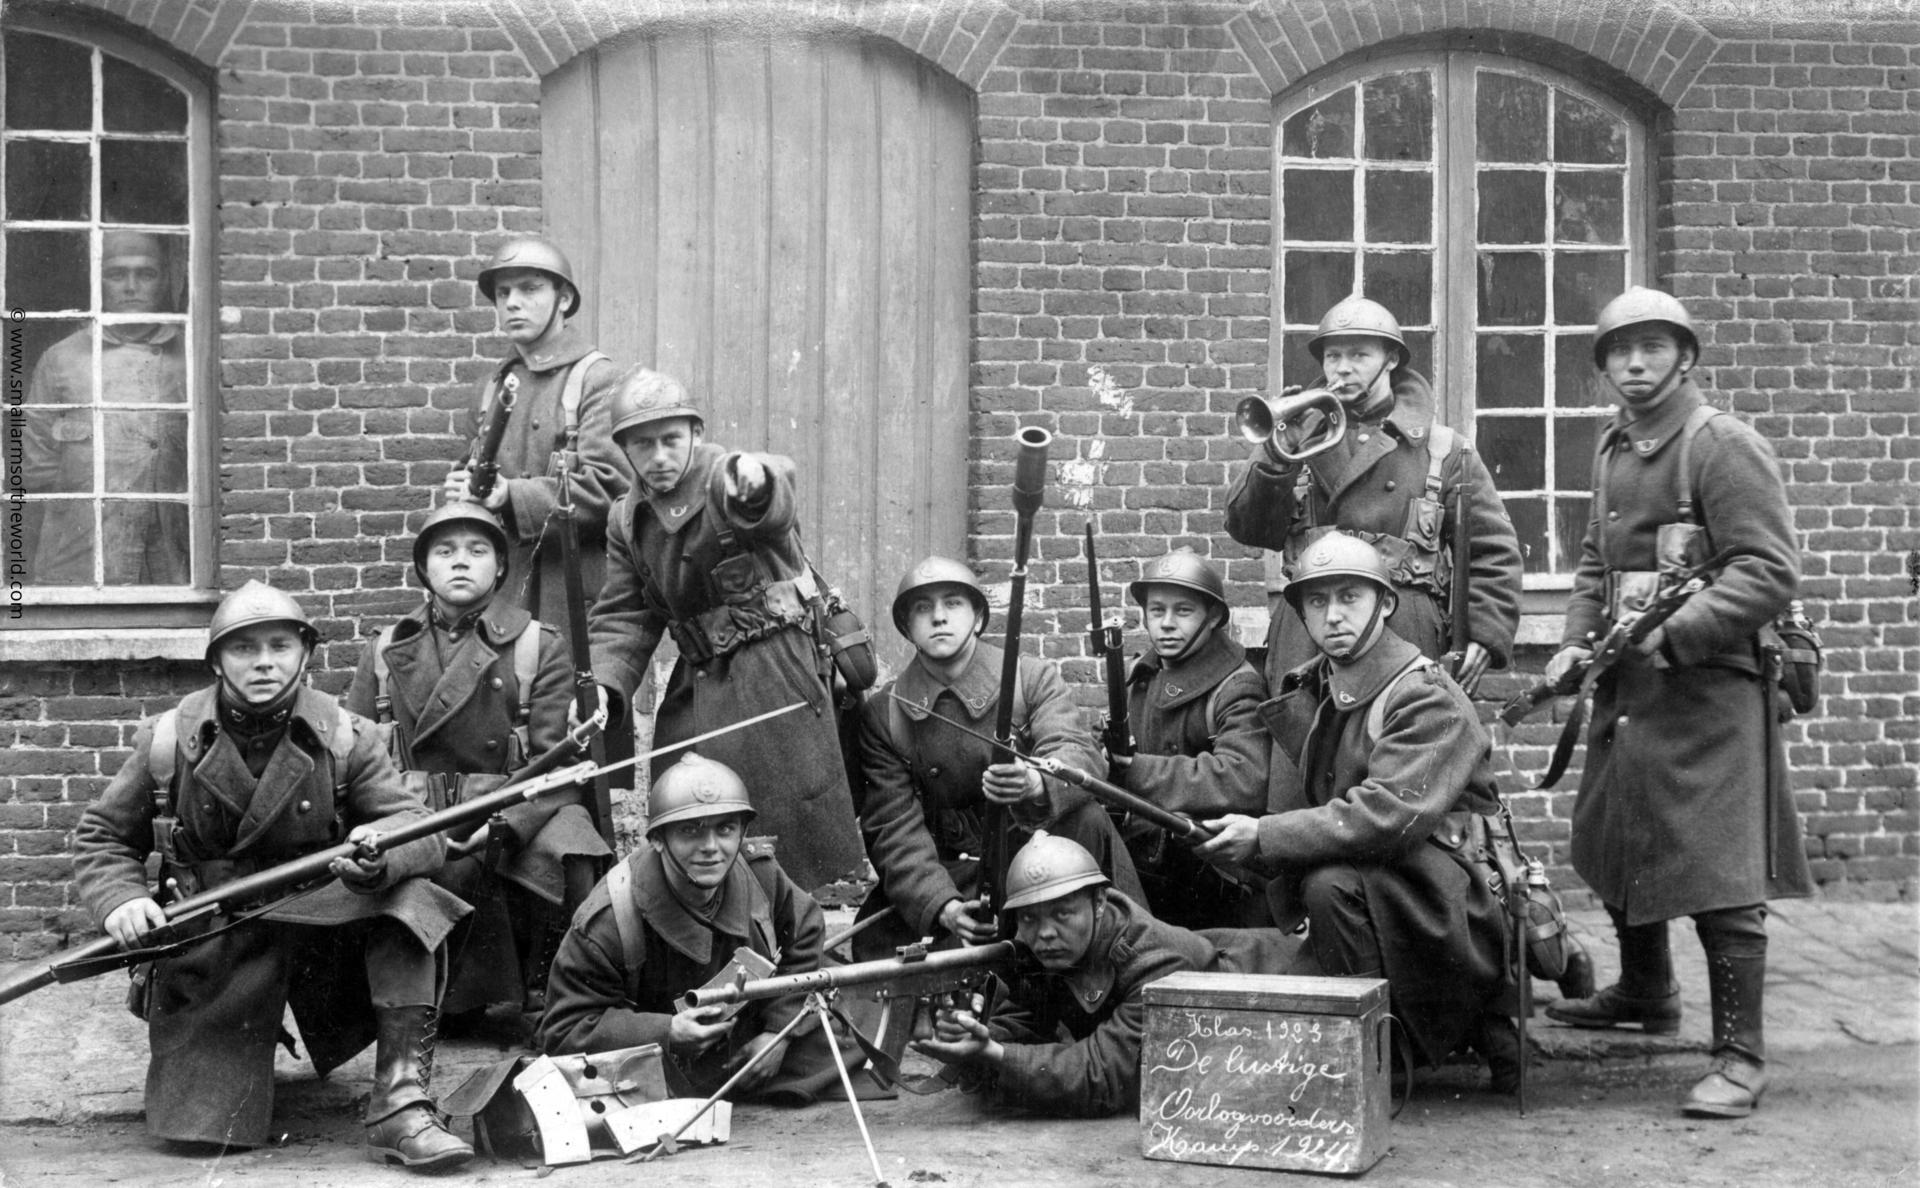 Postcard - dated 1923 - Belgian soldiers with Chauchat Mle 1915/27 light machine gun chambered for 7.65 x 54, a Belgian cartridge. Model 1889 Belgian Mauser rifles.